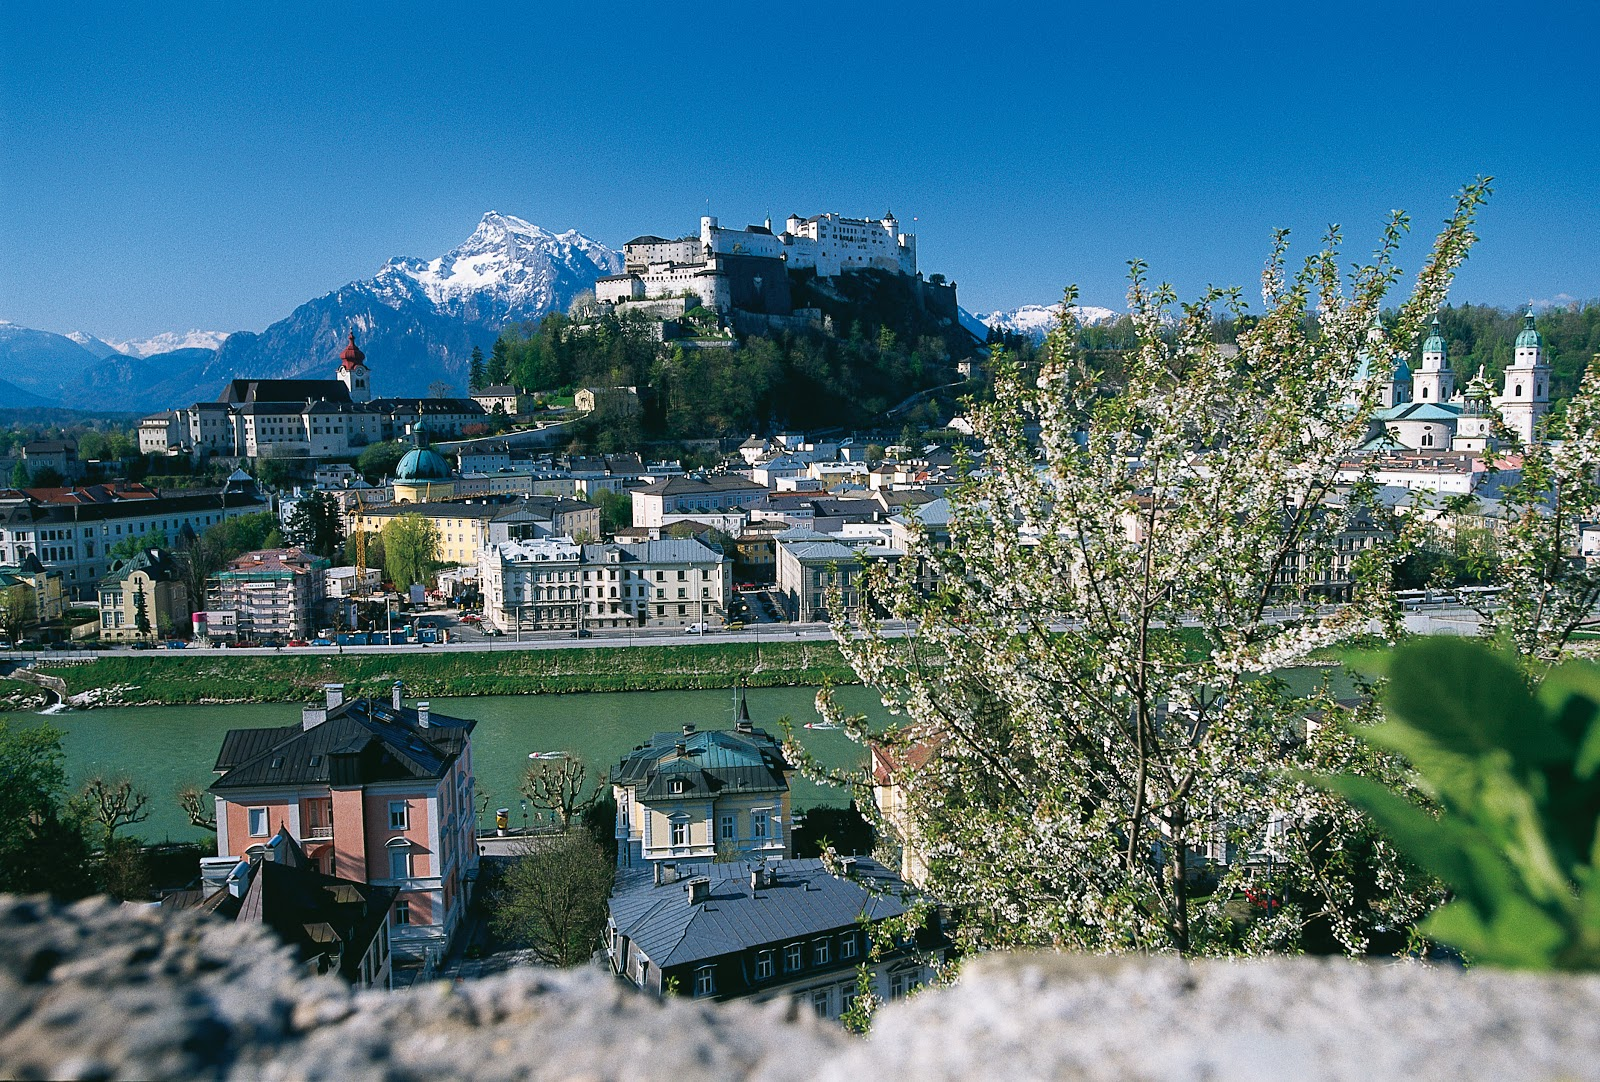 Beyond the Hohensalzburg Fortress, behold Untersberg Mountain, the location of the final scene in the movie when the Von Trapps were crossing over the mountains into Switzerland. © Tourismus-Salzburg GmbH.